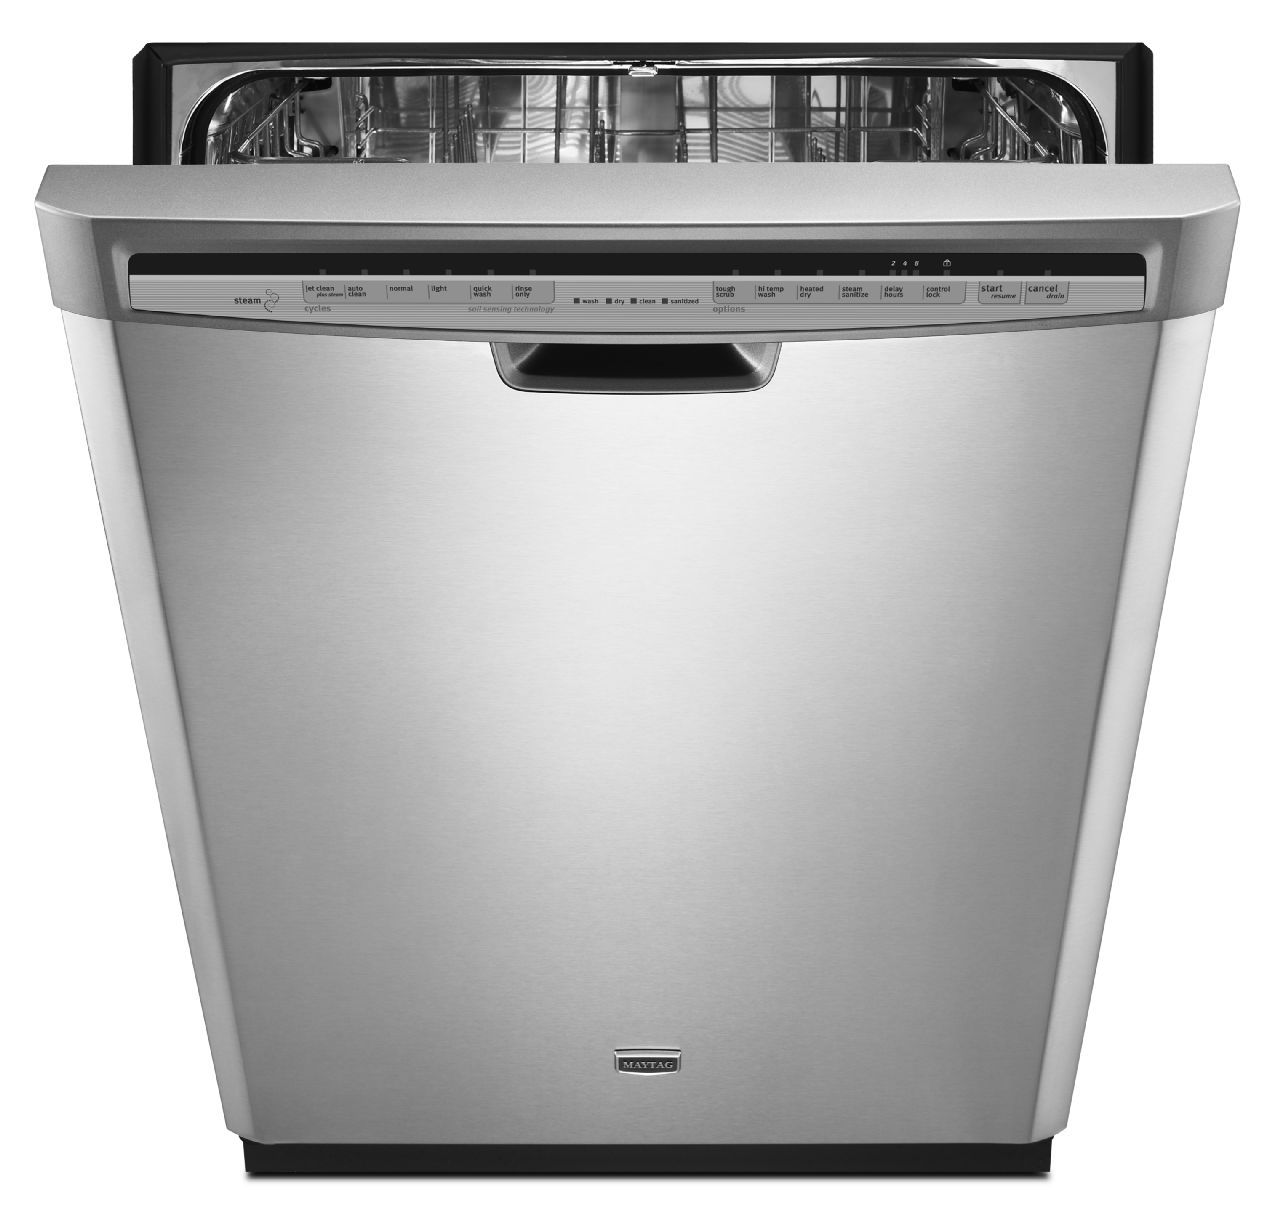 "Maytag 24"" Jetclean® Plus Dishwasher w/ Stainless Steel Tub - Stainless Steel"